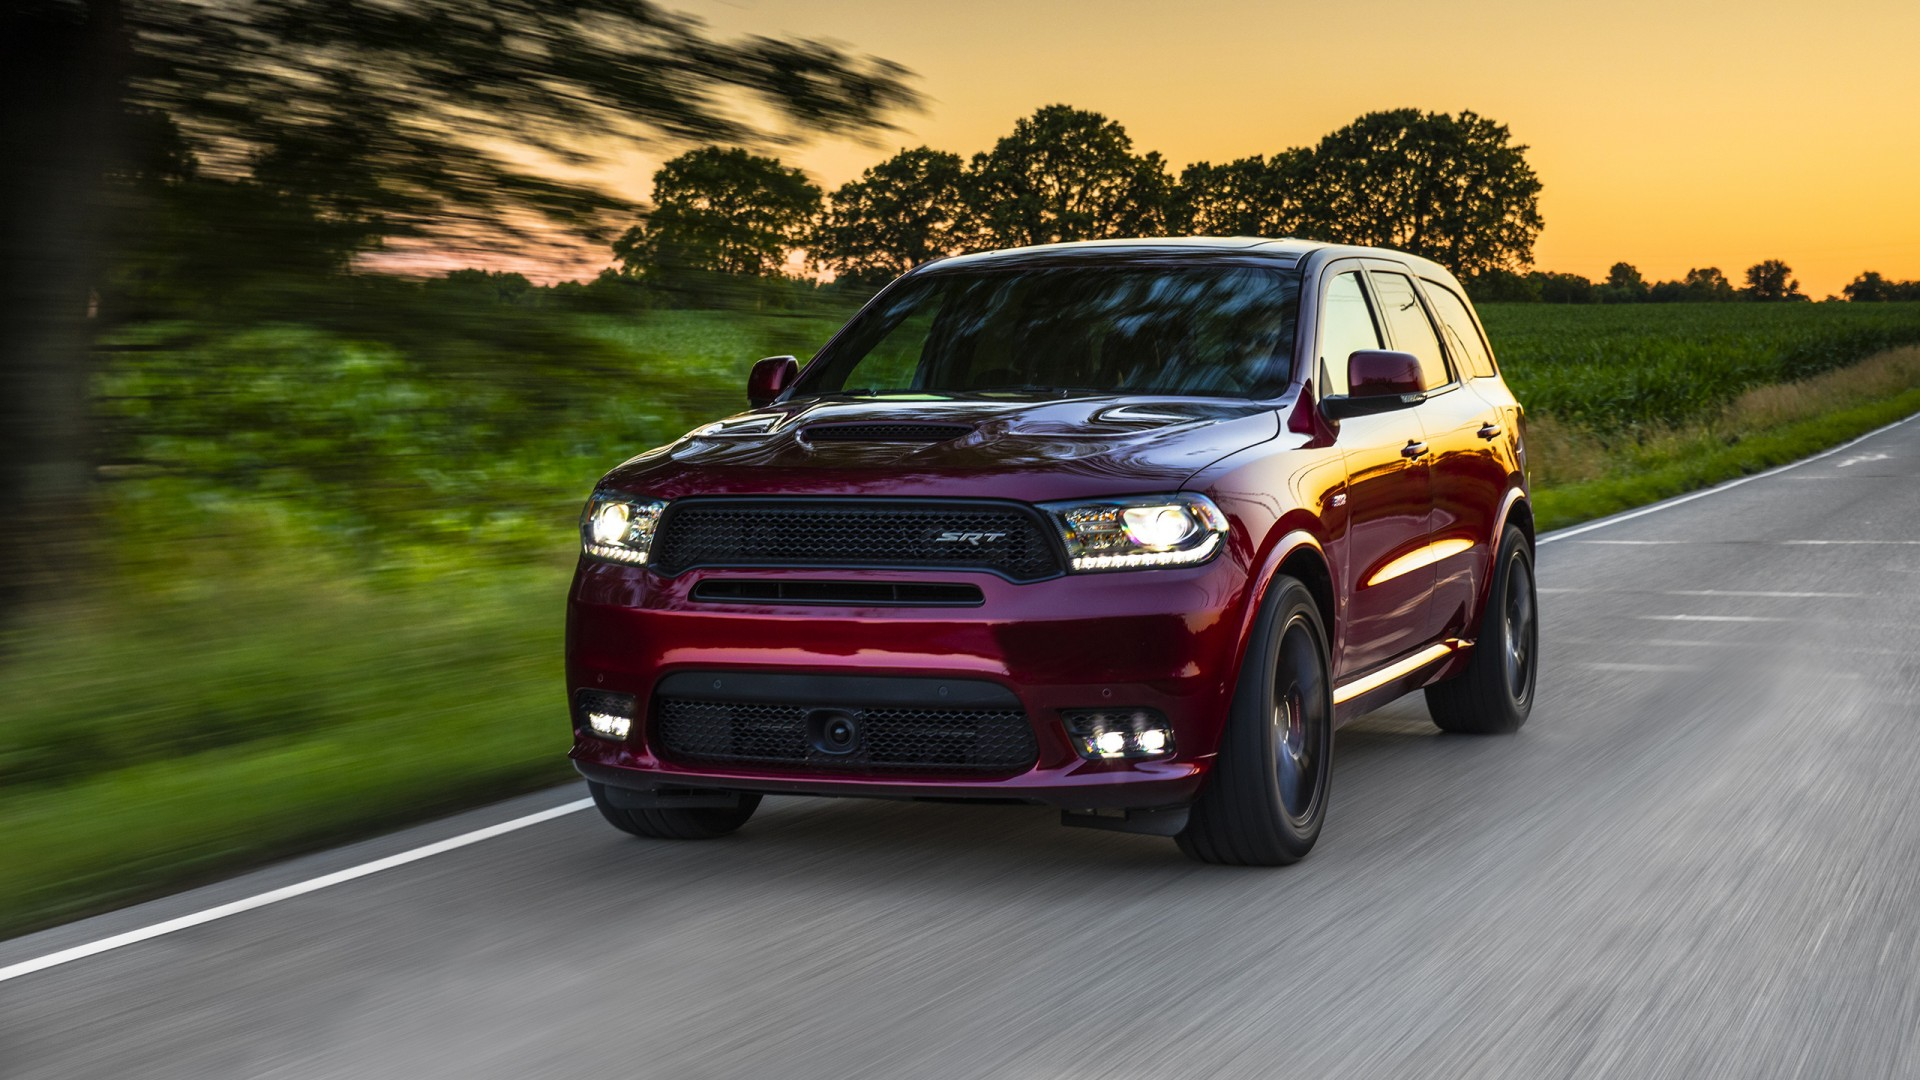 2018 Dodge Durango Srt Dodge Durango Srt 2019 1471363 Hd Wallpaper Backgrounds Download